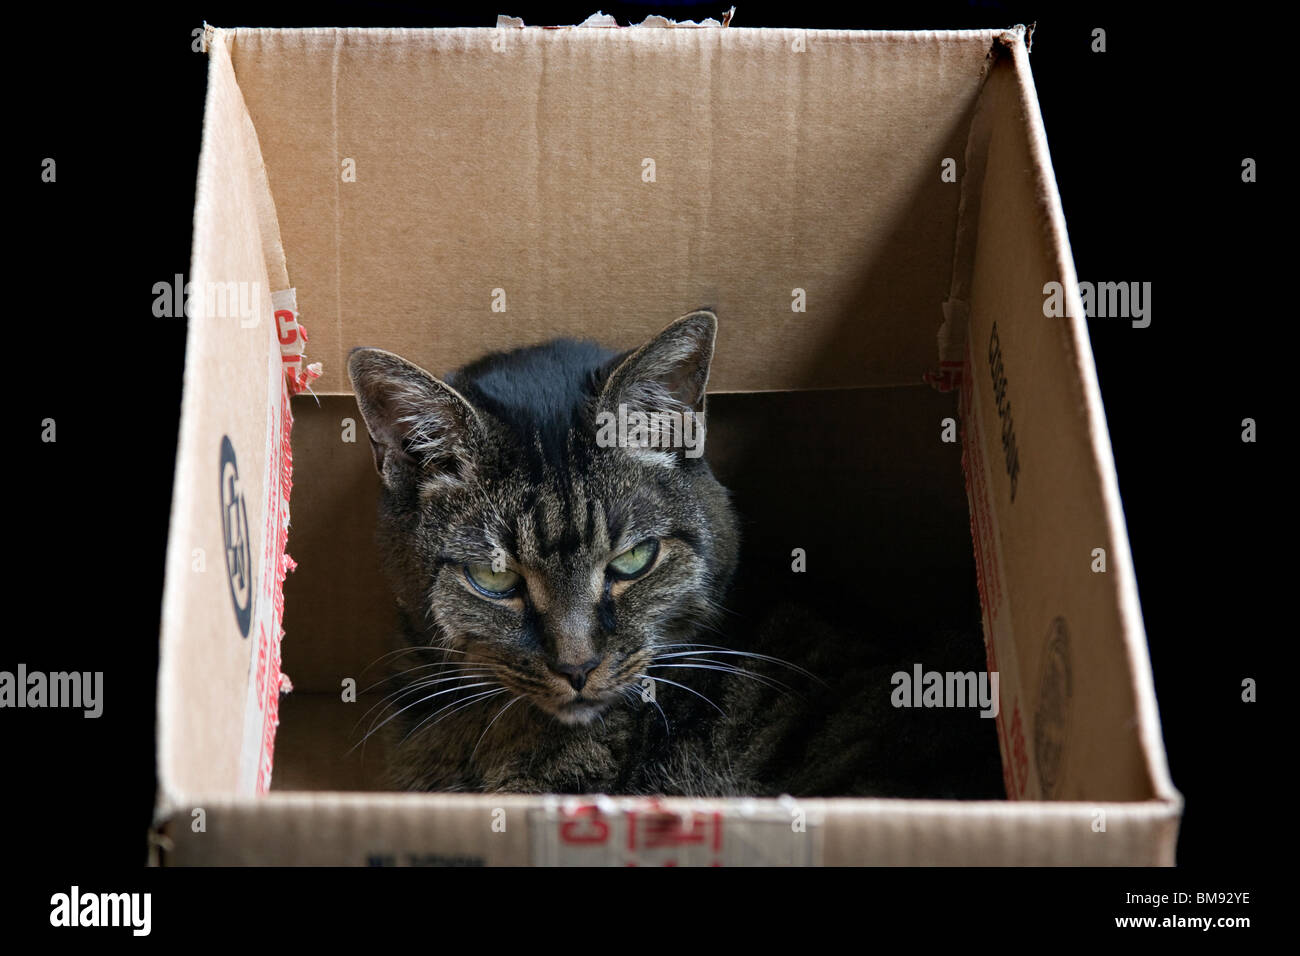 American Shorthair Cat in cardboard box. Stock Photo